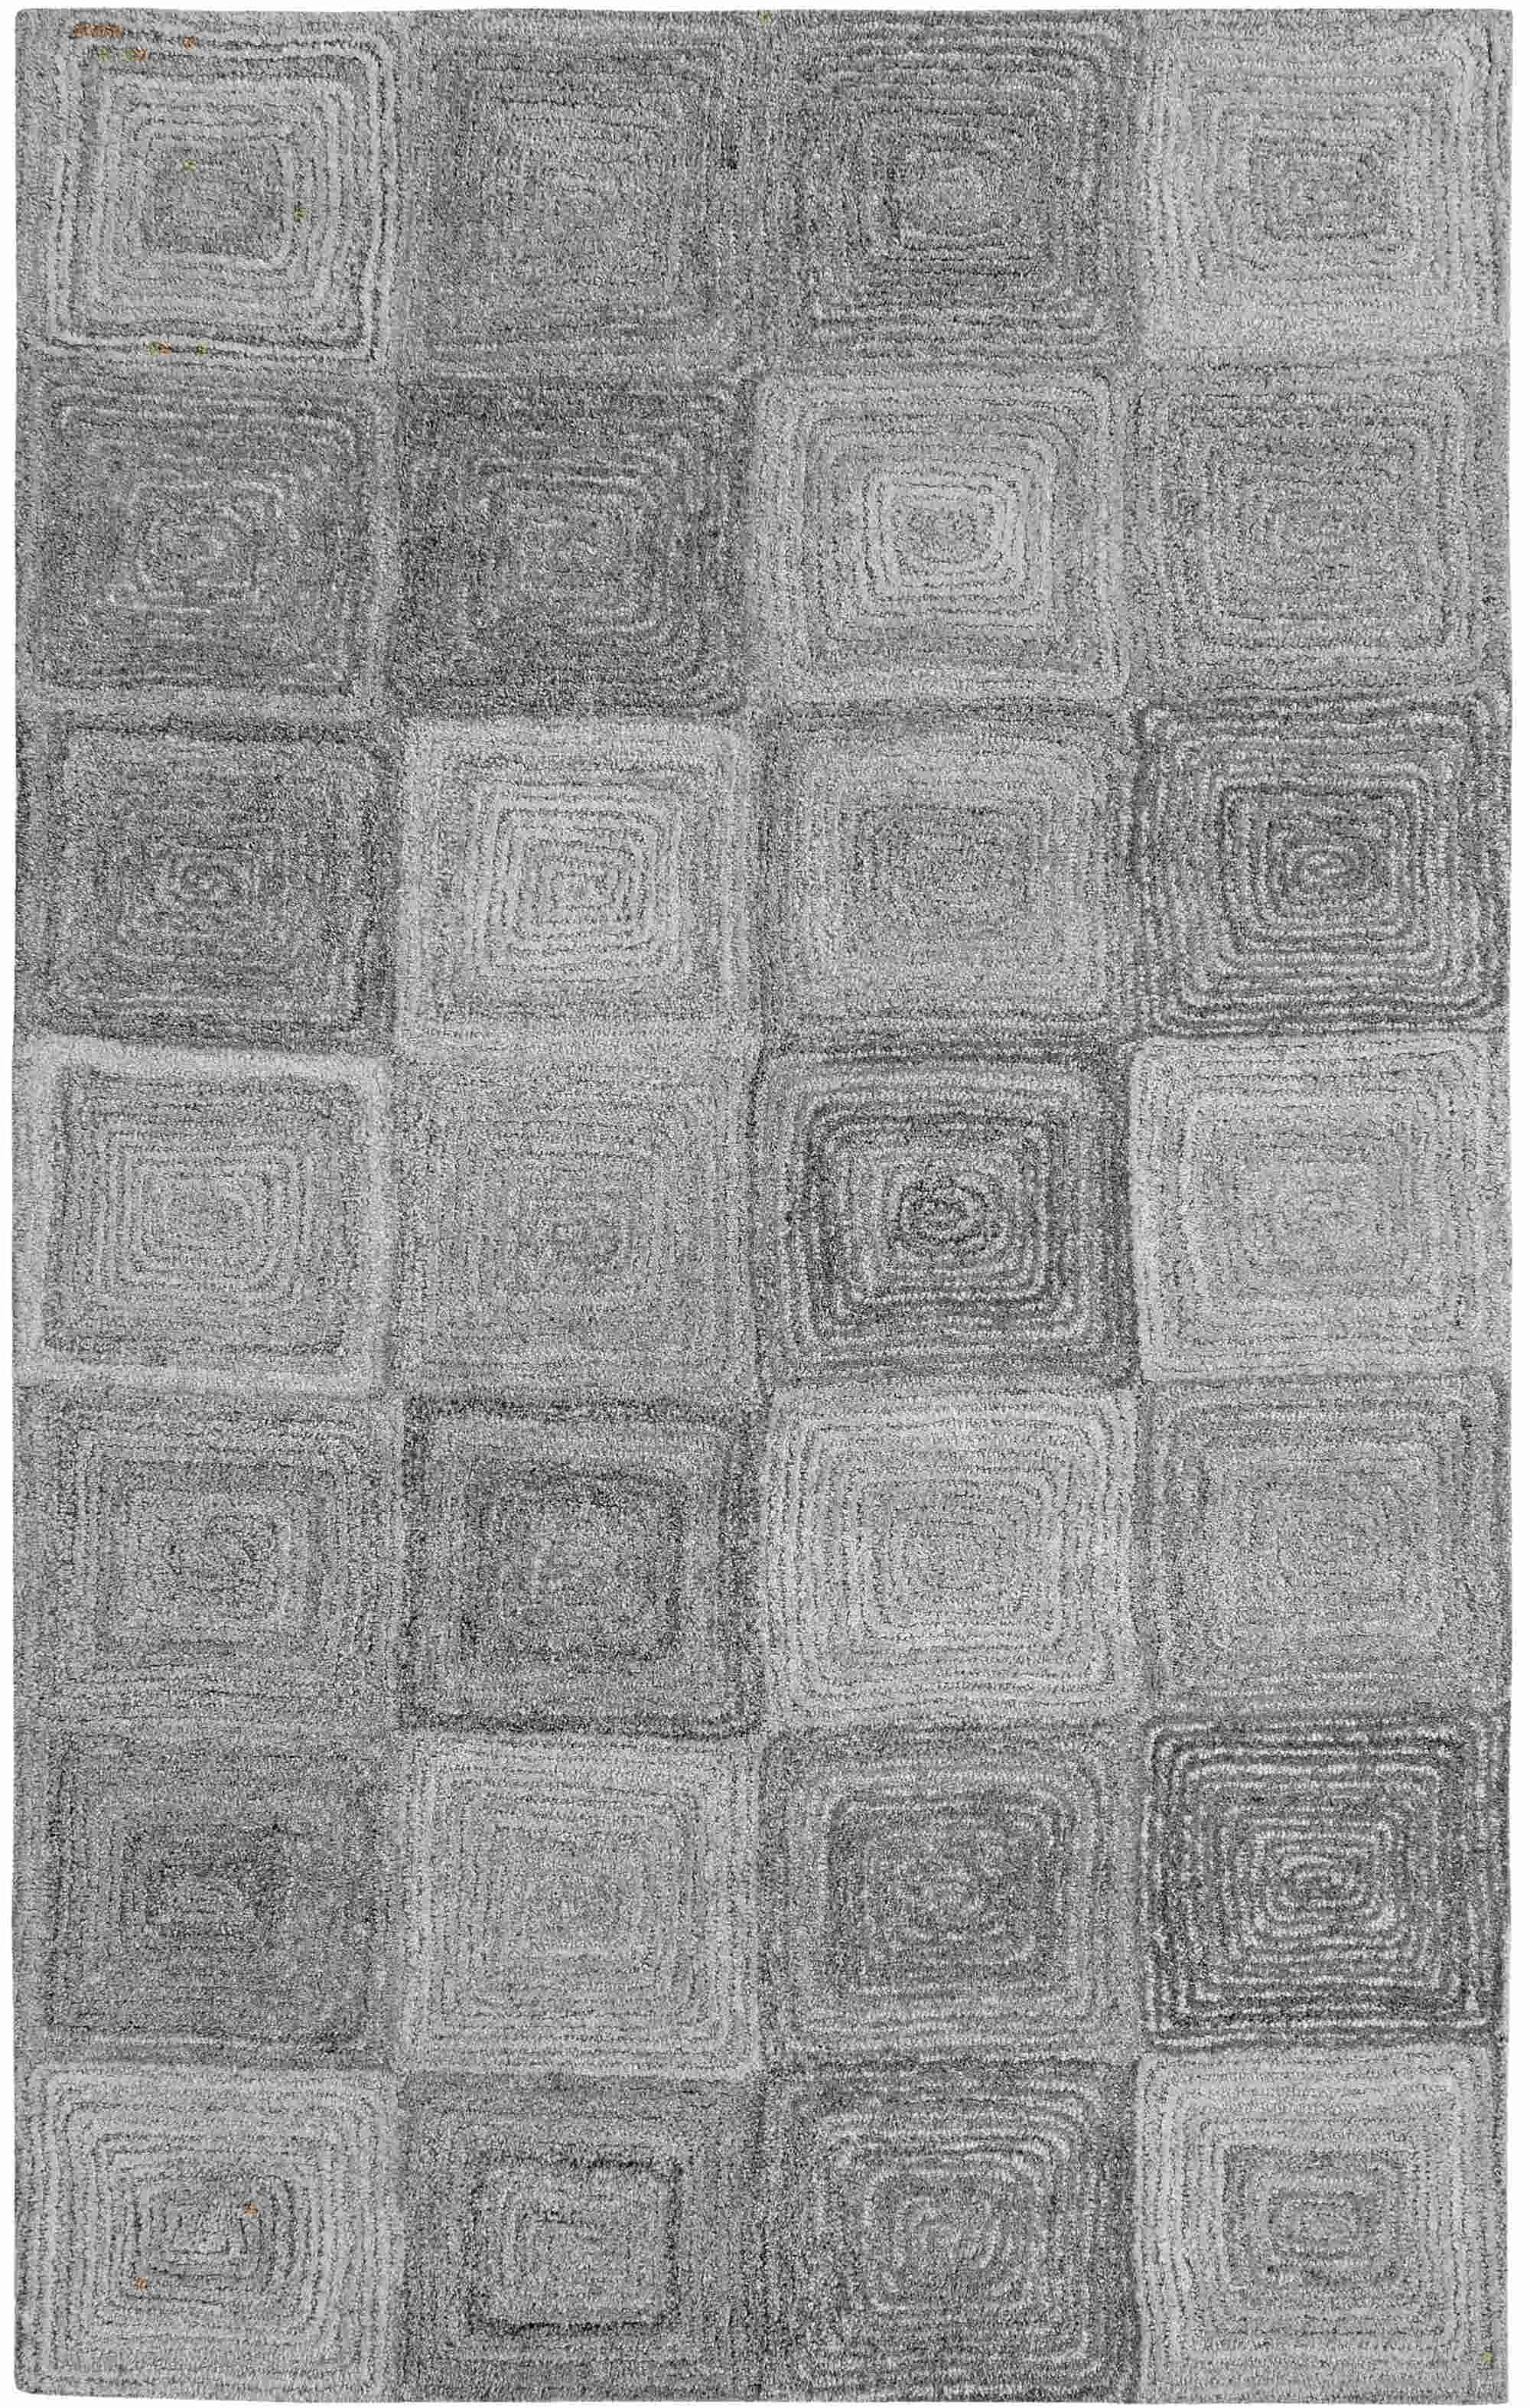 Dynamic Rugs Posh Geometric Grey 7805 Area Rug